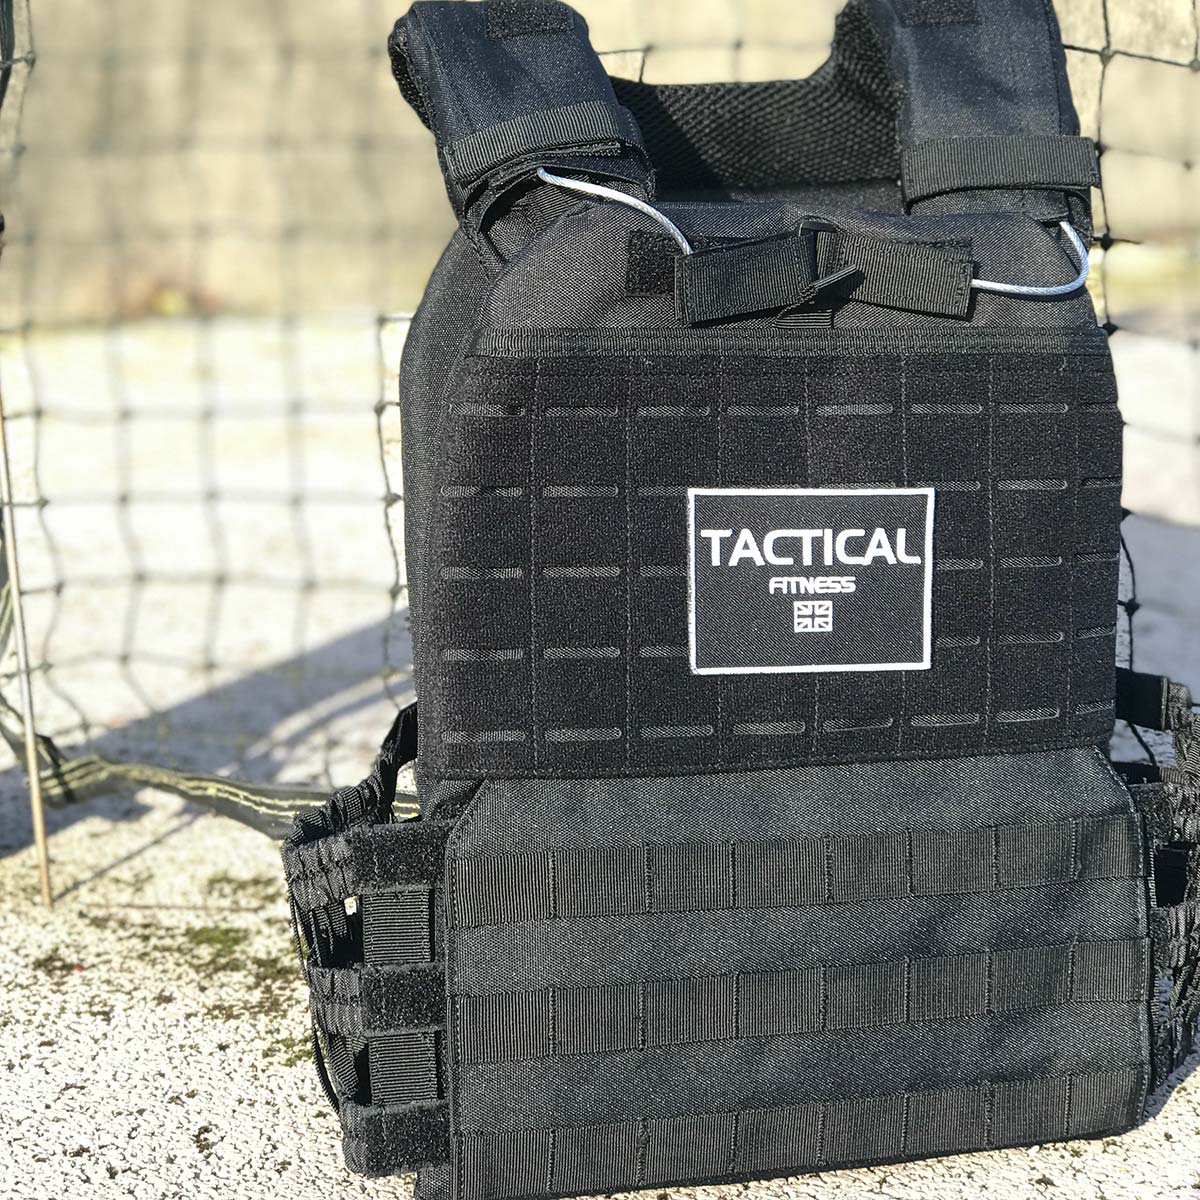 Tactical Fitness Weighted Training Vest